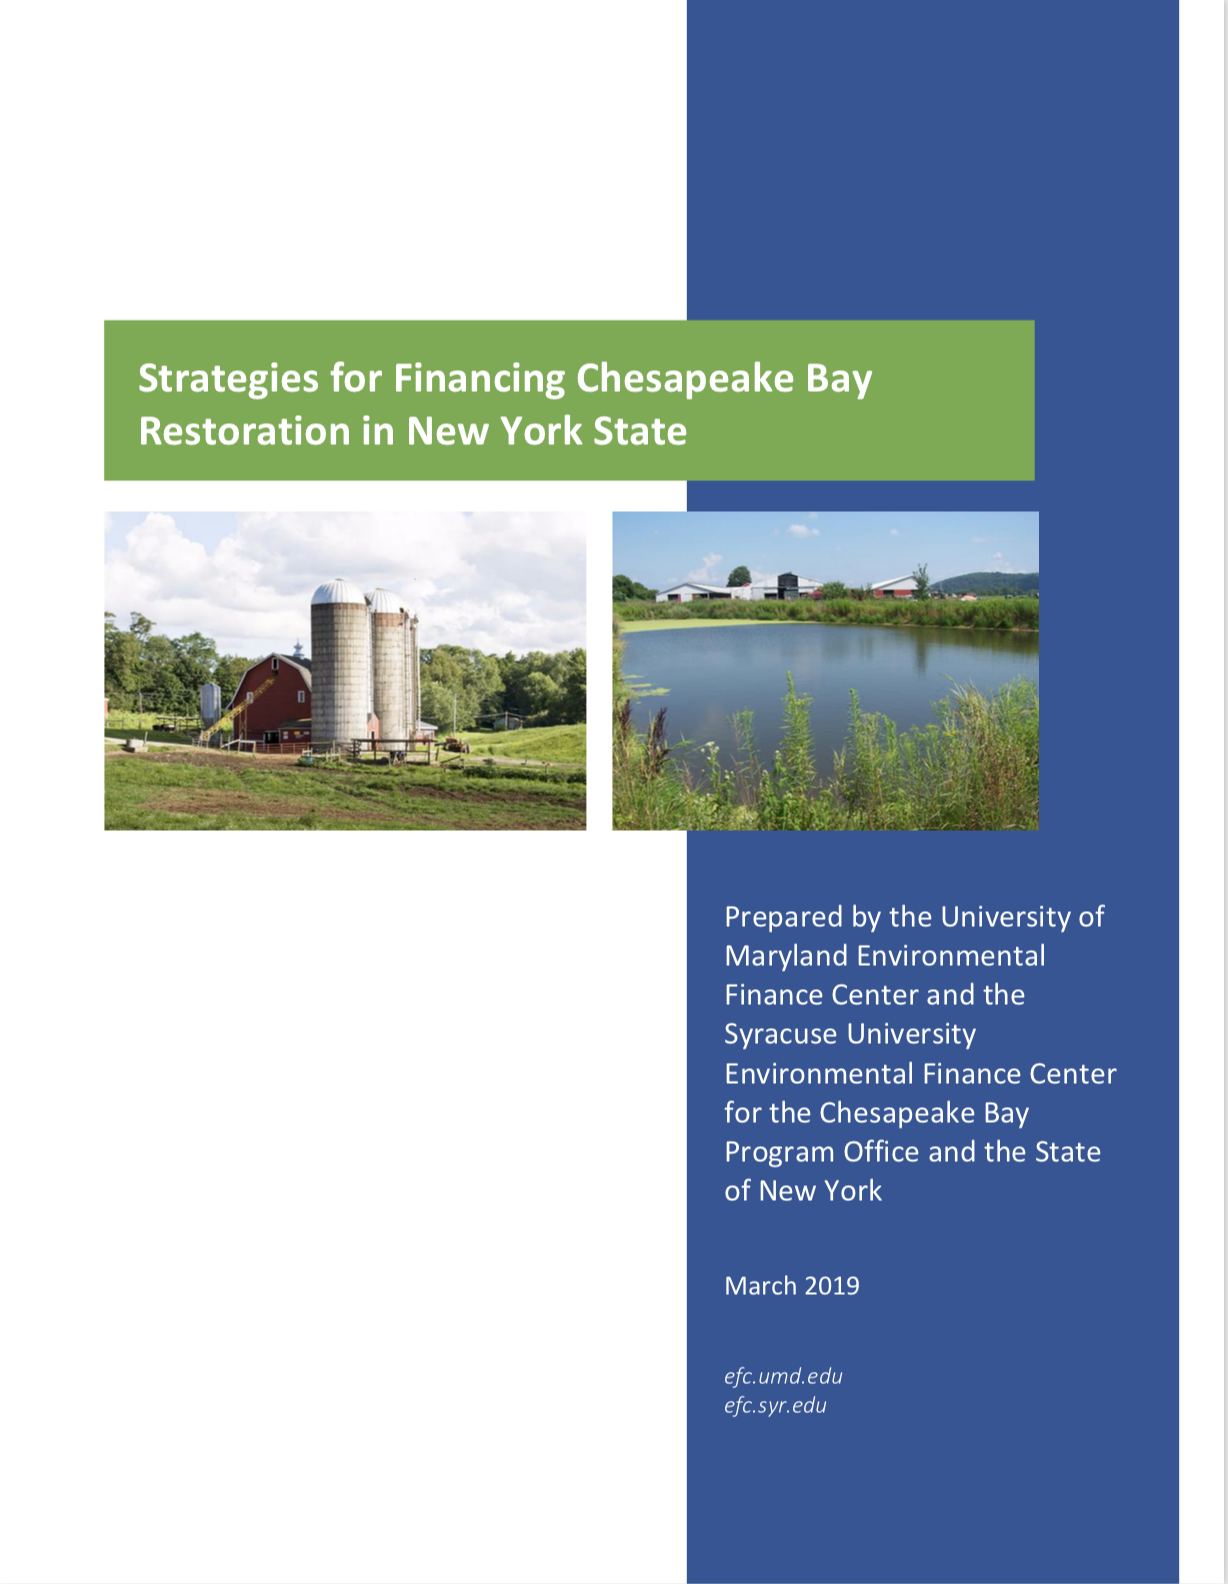 Strategies for Financing Bay Restoration in New York